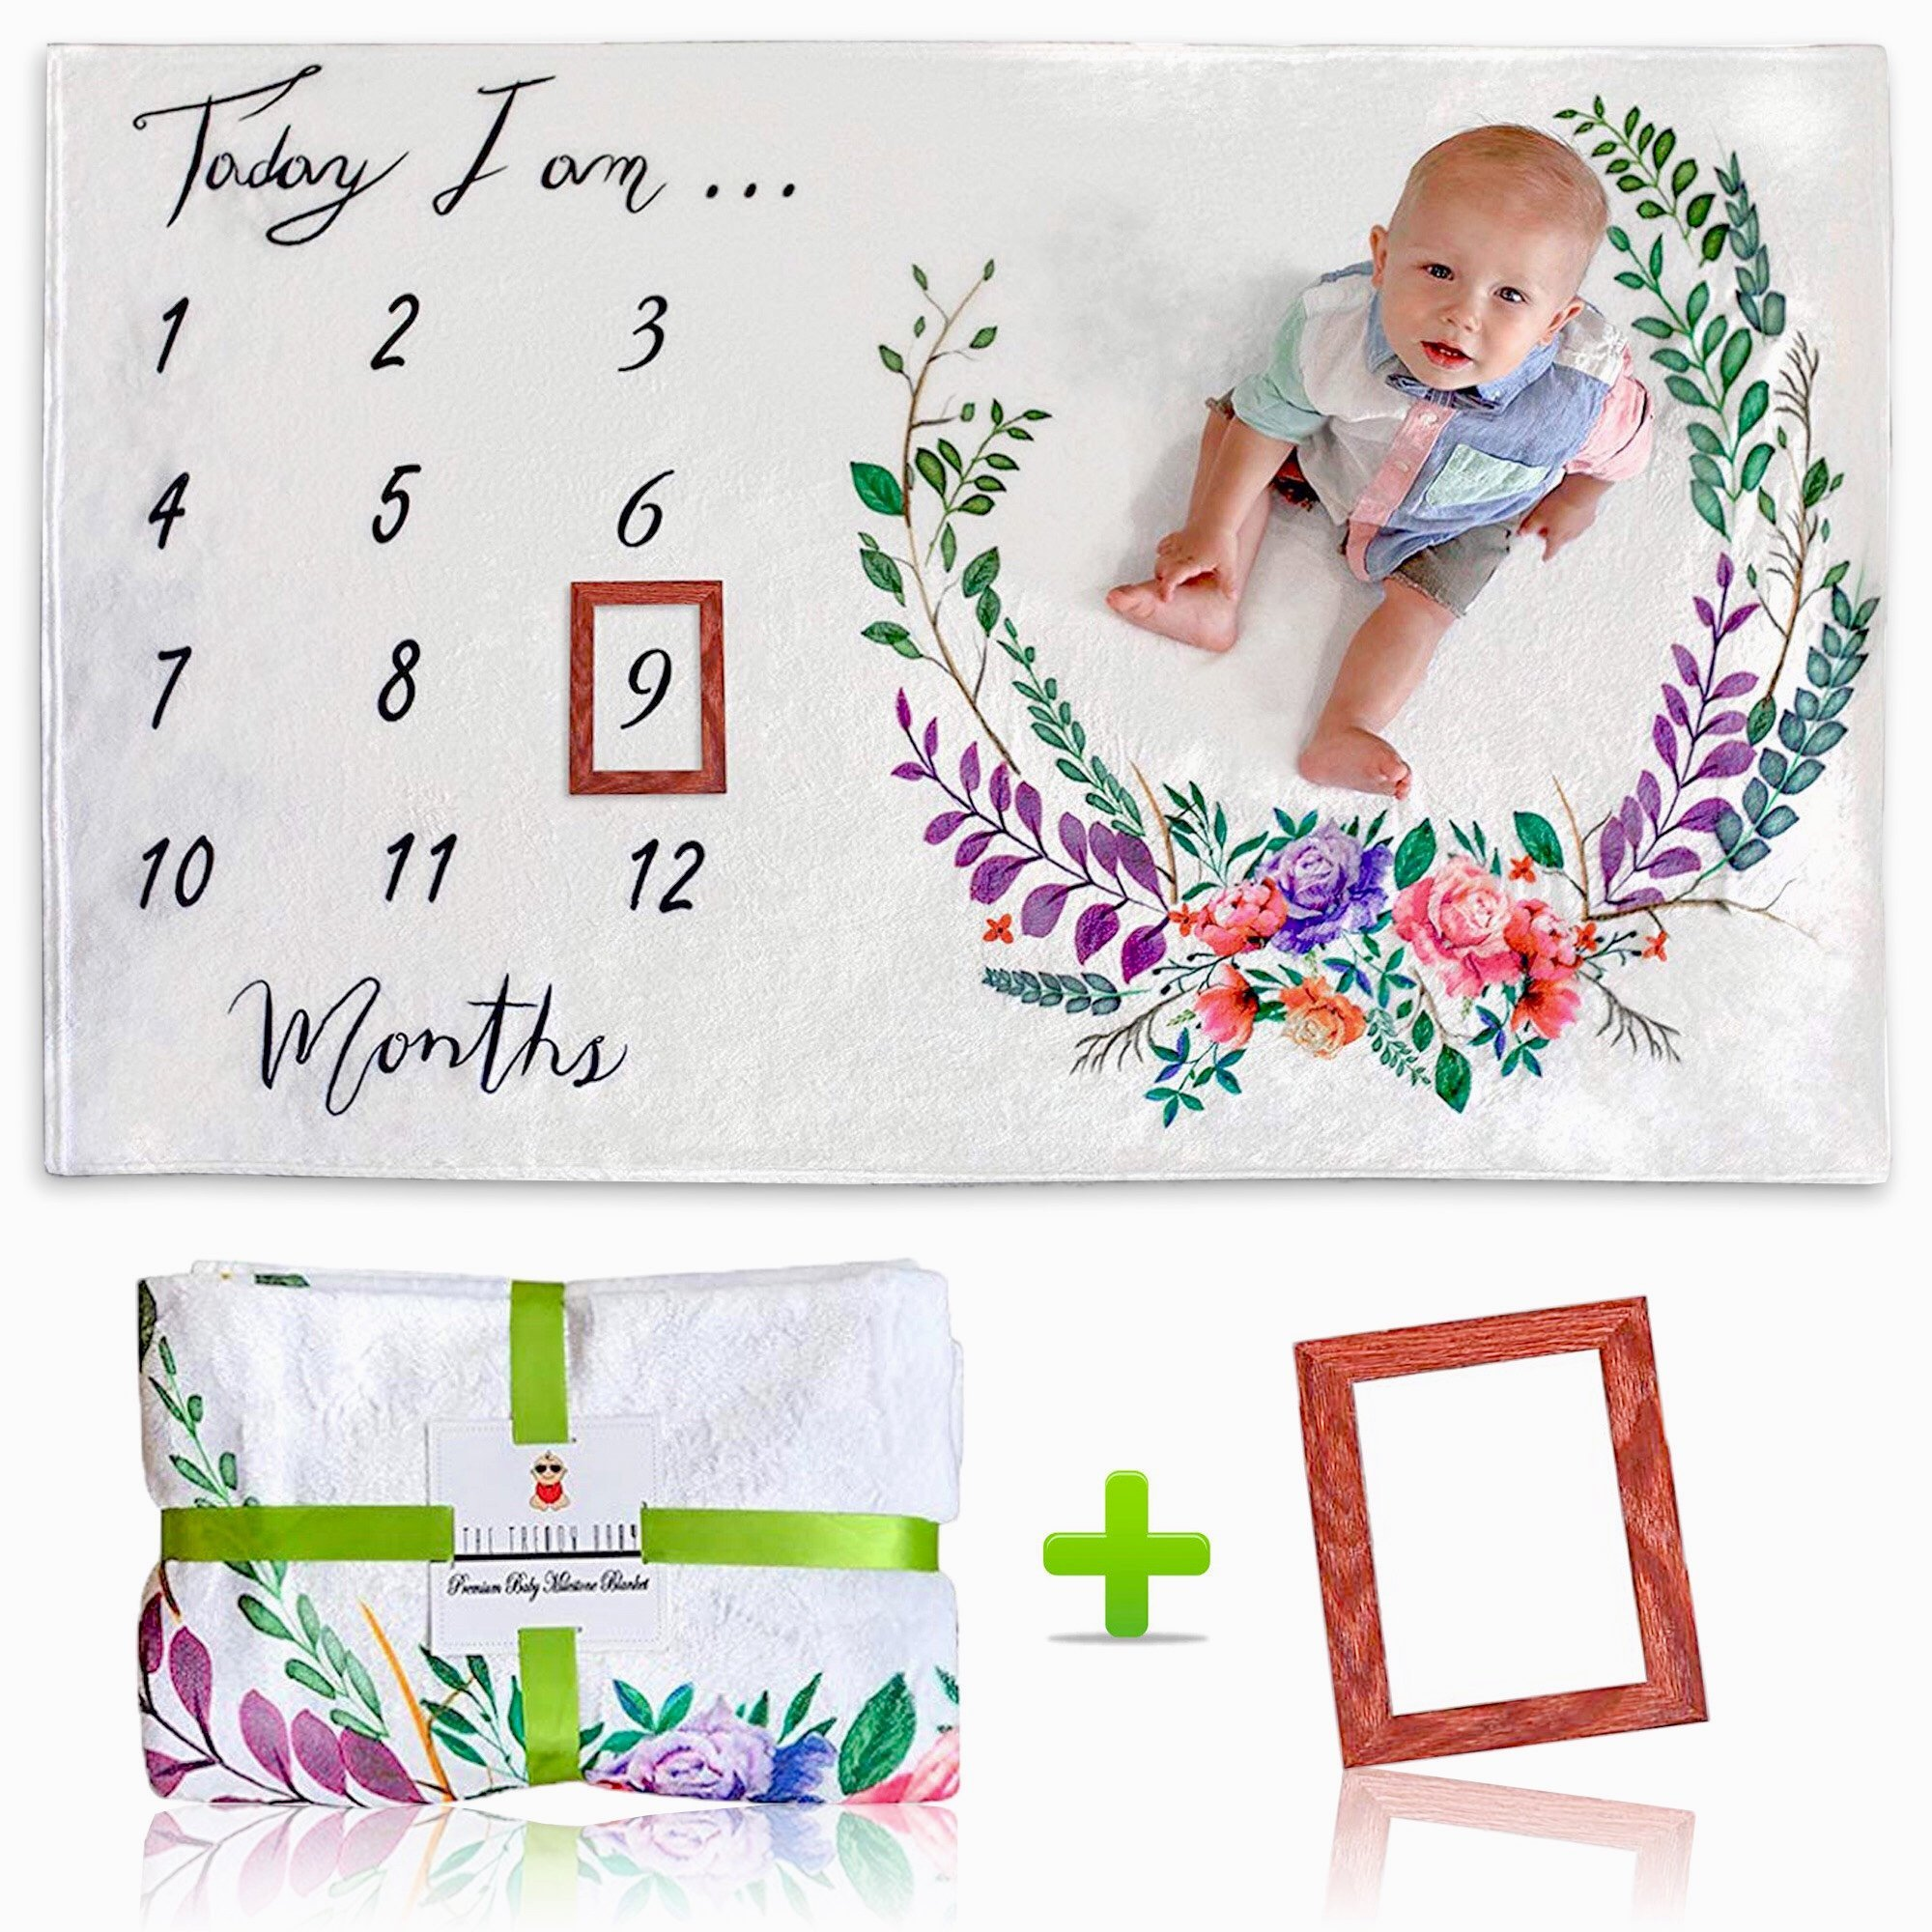 [Upgrade Version] Premium Baby Monthly Milestone Blanket w/Bonus Wooden Style Frame | Thick Soft (Upgraded 250gsm) Fleece Blanket | Large 60x40 Size | Best Newborn or Baby Shower Gift for Boy or Girl